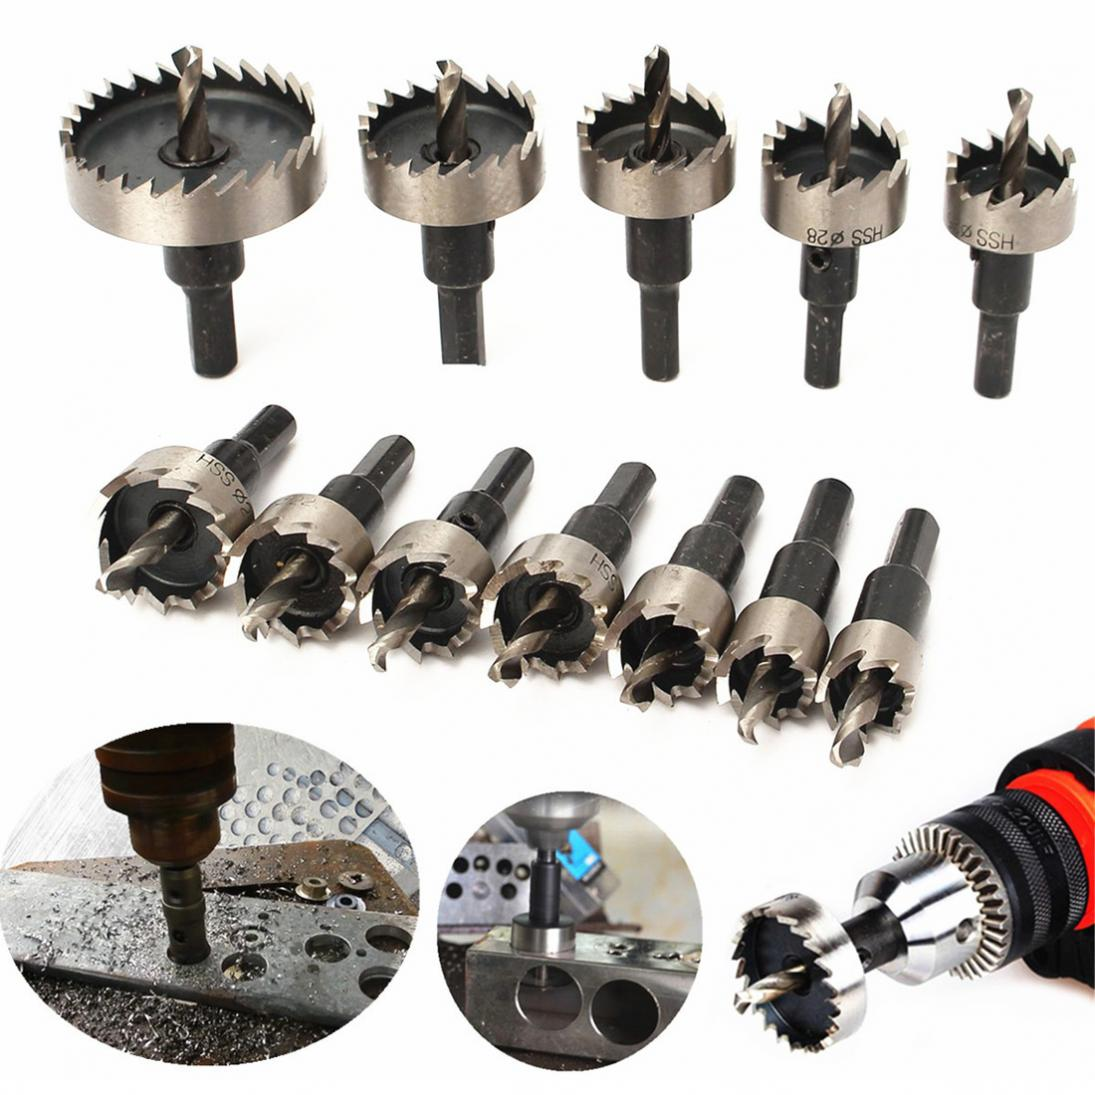 12pcs Hole Saw Tooth Kit HSS Steel Core Drill Bit Set Cutter Tool For Metal Wood Alloy Core Drill Bit sets